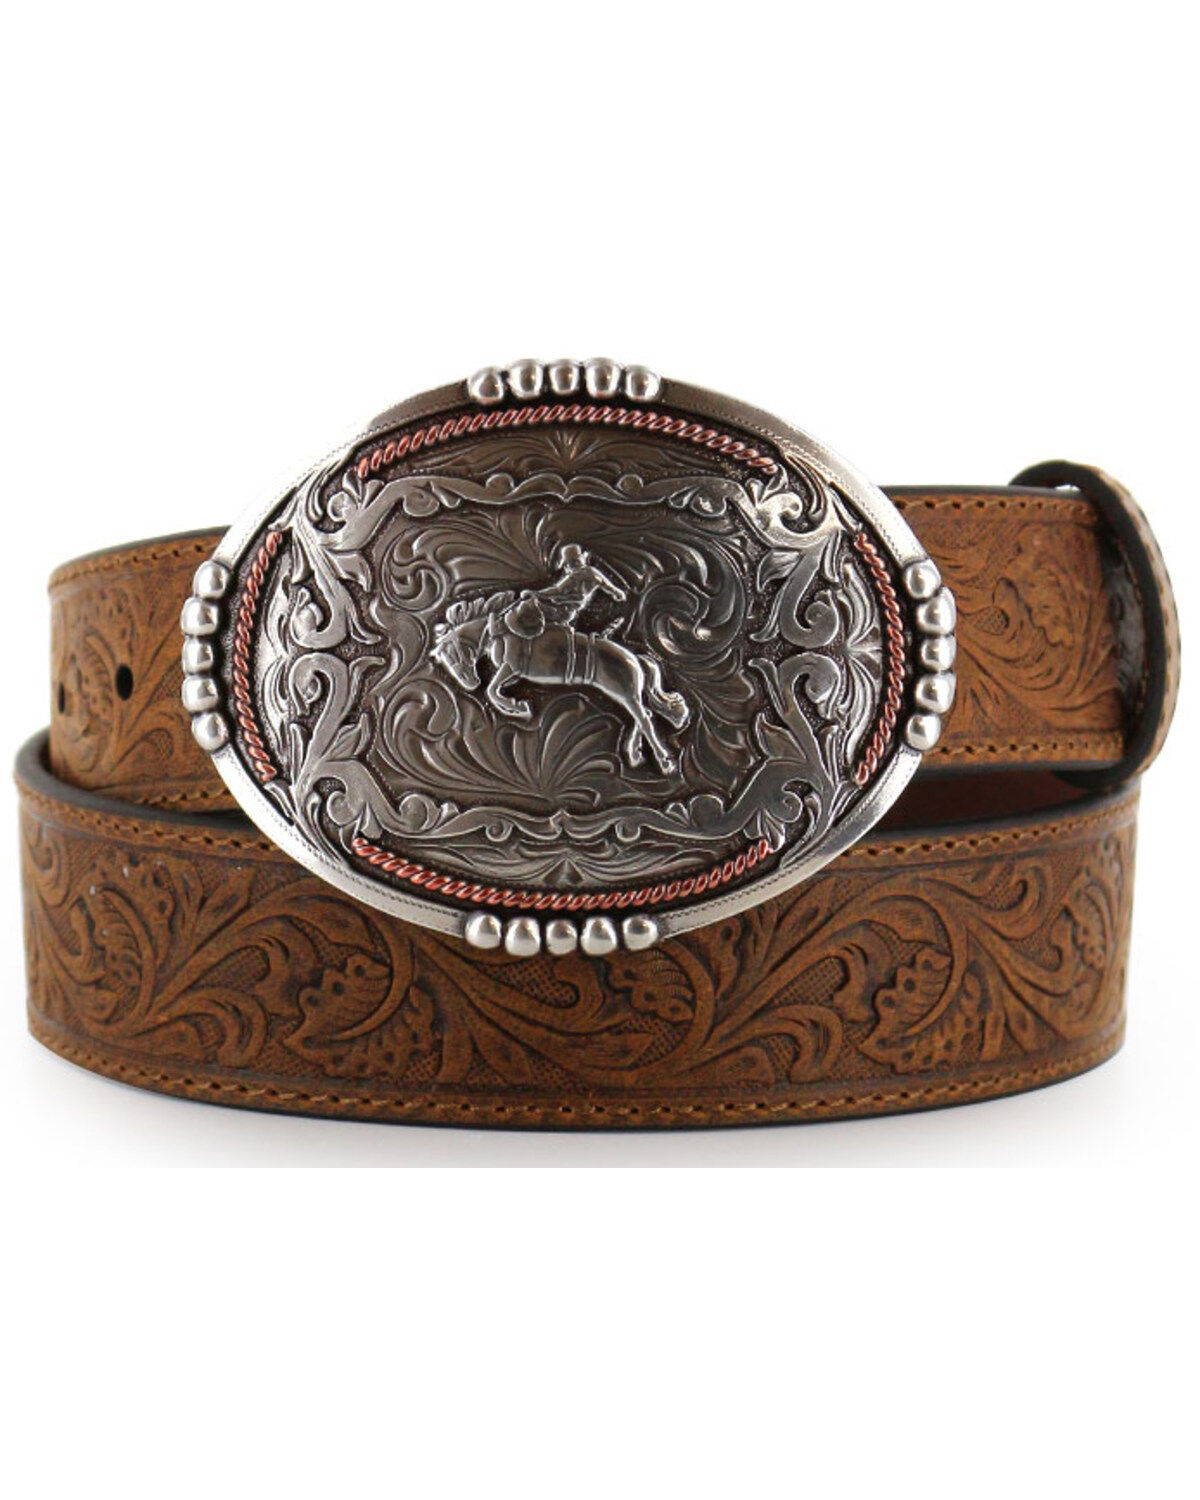 the Austin hand tooled belt,conchos and matching silver Buckle fits 40 to 45 inches